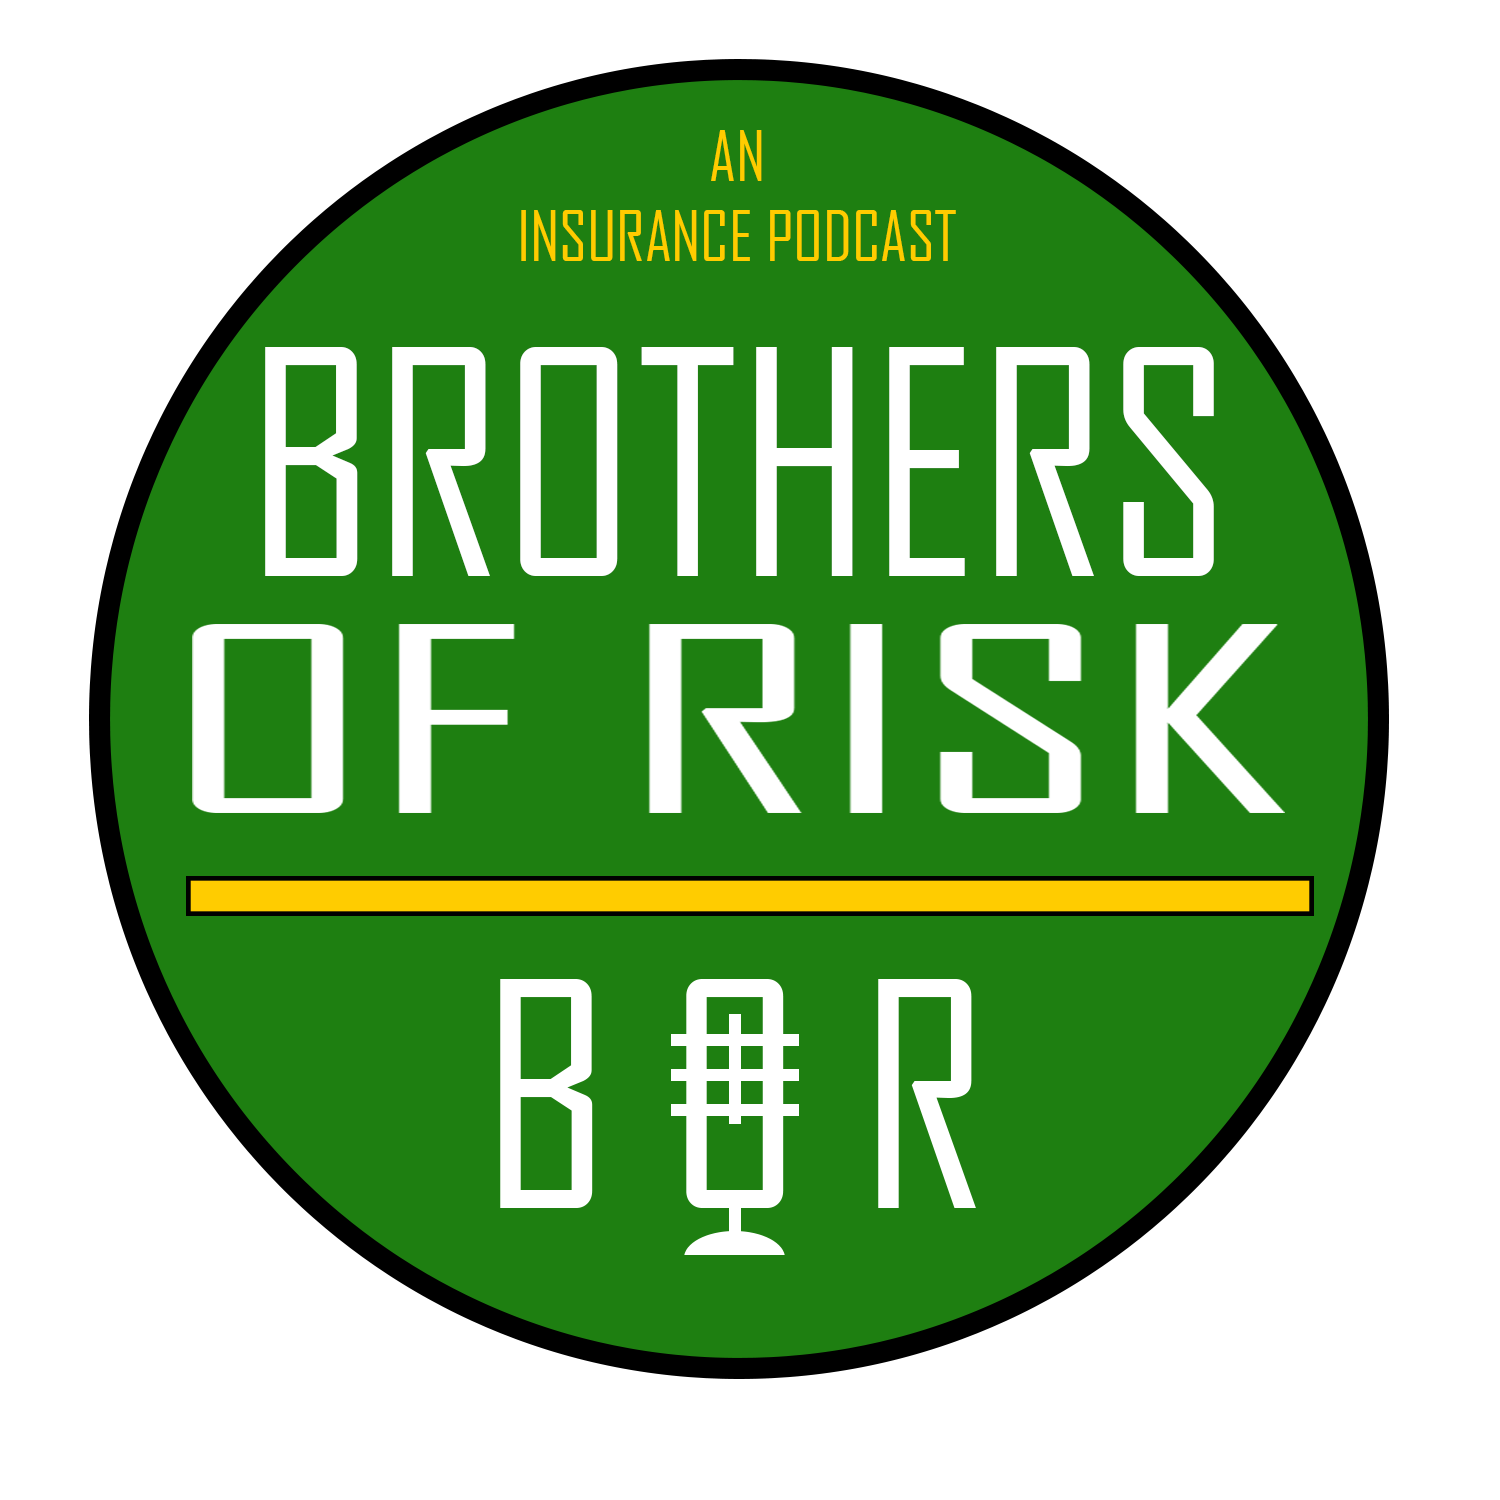 Brothers Of Risk